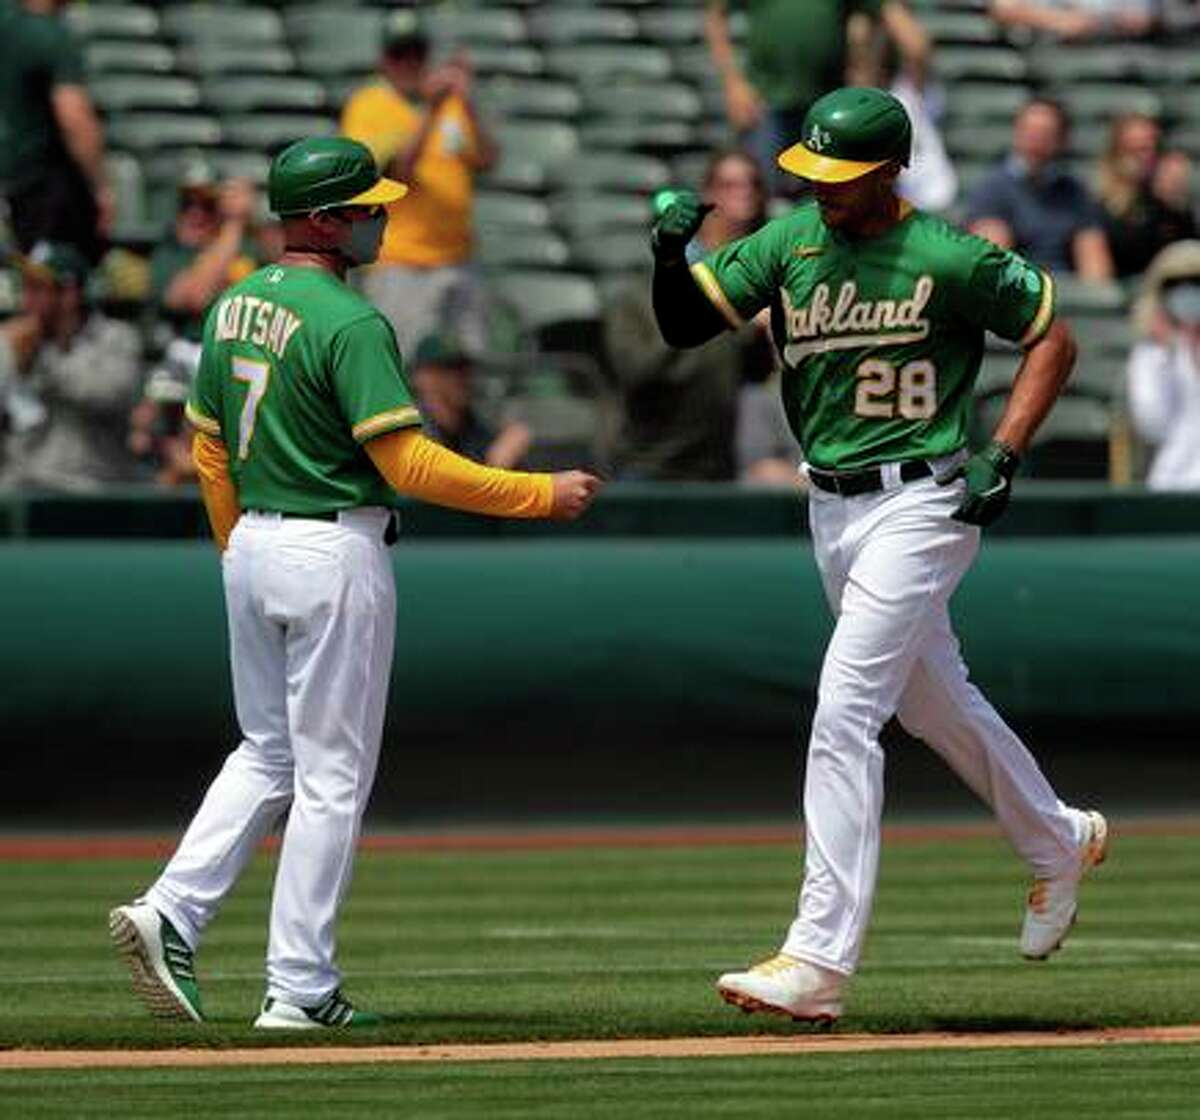 Matt Olson (28) high fives third base coach Mark Kotsay as he rounds the bases on his solo homerun in the second inning as the Oakland Athletics played the Minnesota Twins at the Oakland Coliseum in Oakland, Calif., on Wednesday, April 21, 2021.